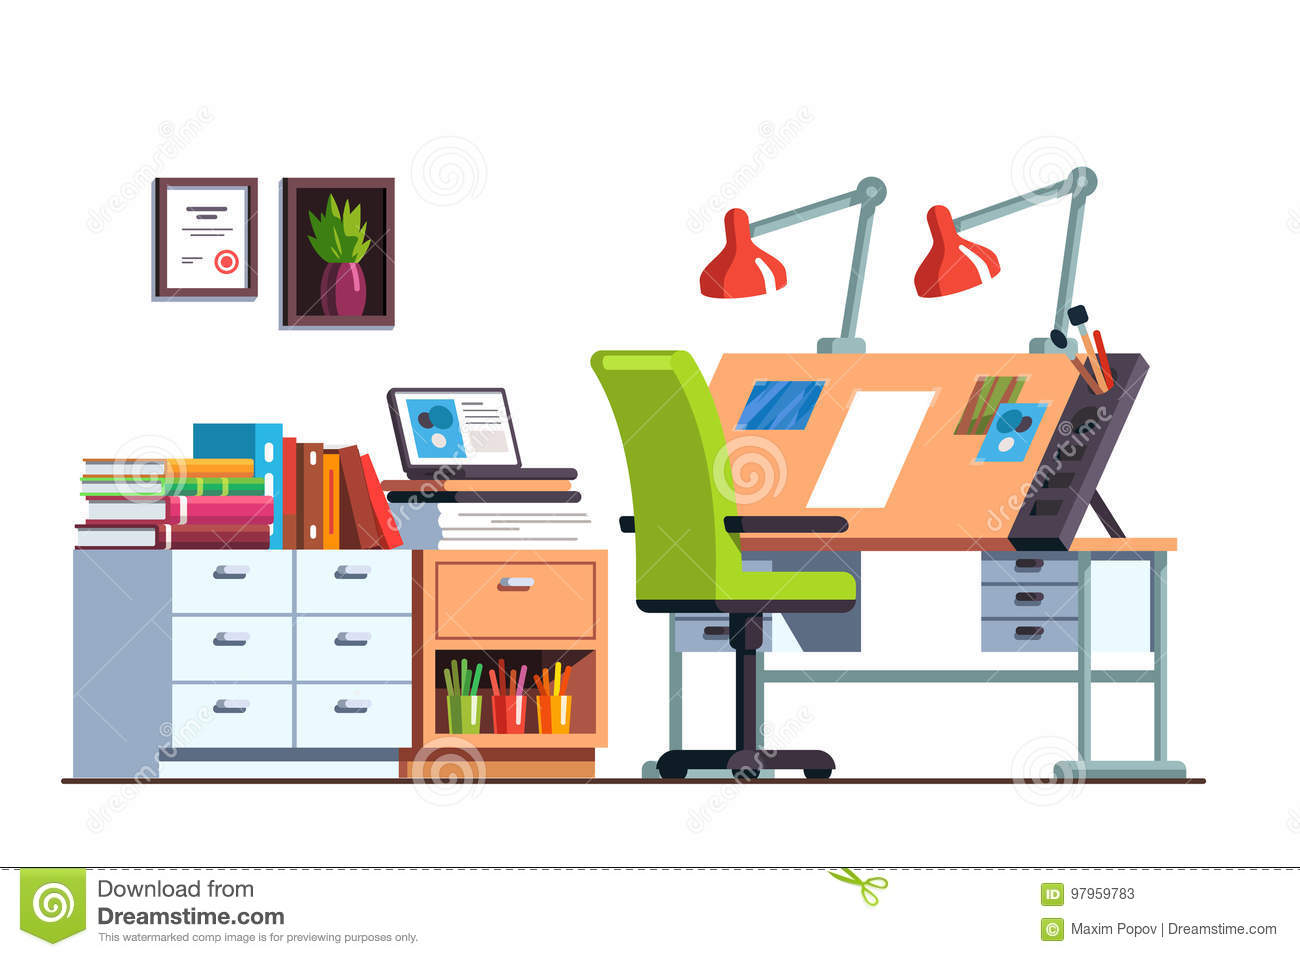 pi ce d 39 atelier ou de bureau d 39 ing nieur avec le bureau de dessin illustration de vecteur. Black Bedroom Furniture Sets. Home Design Ideas